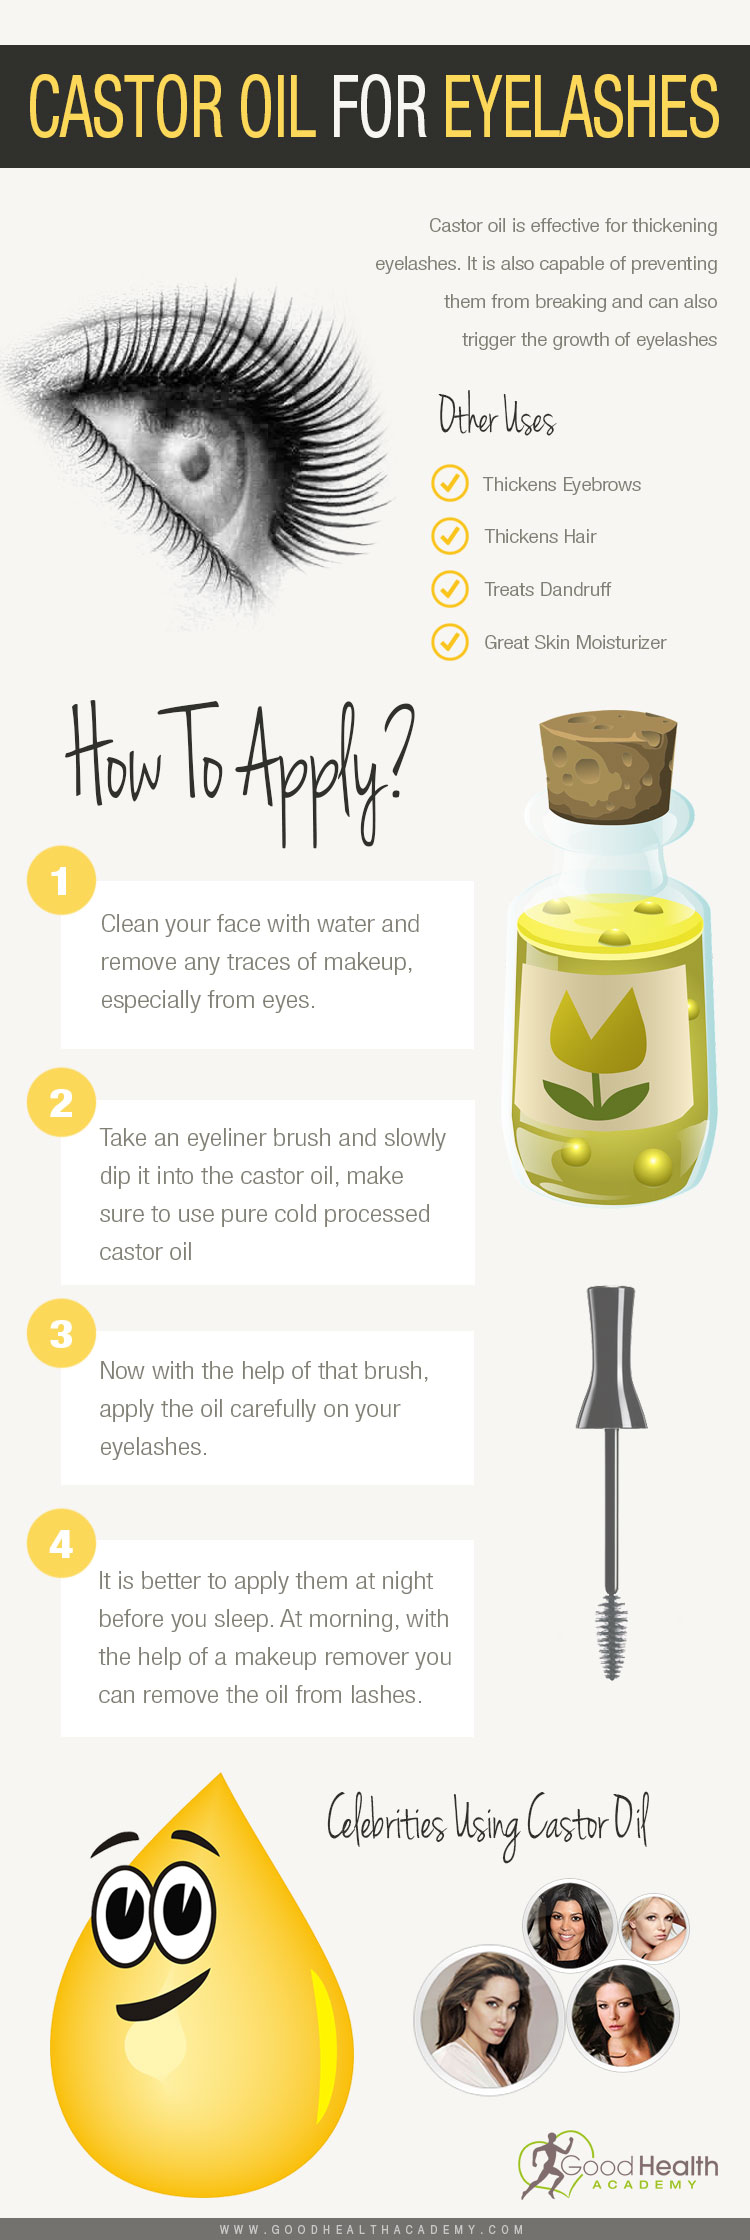 castor oil for eyelashes infographic